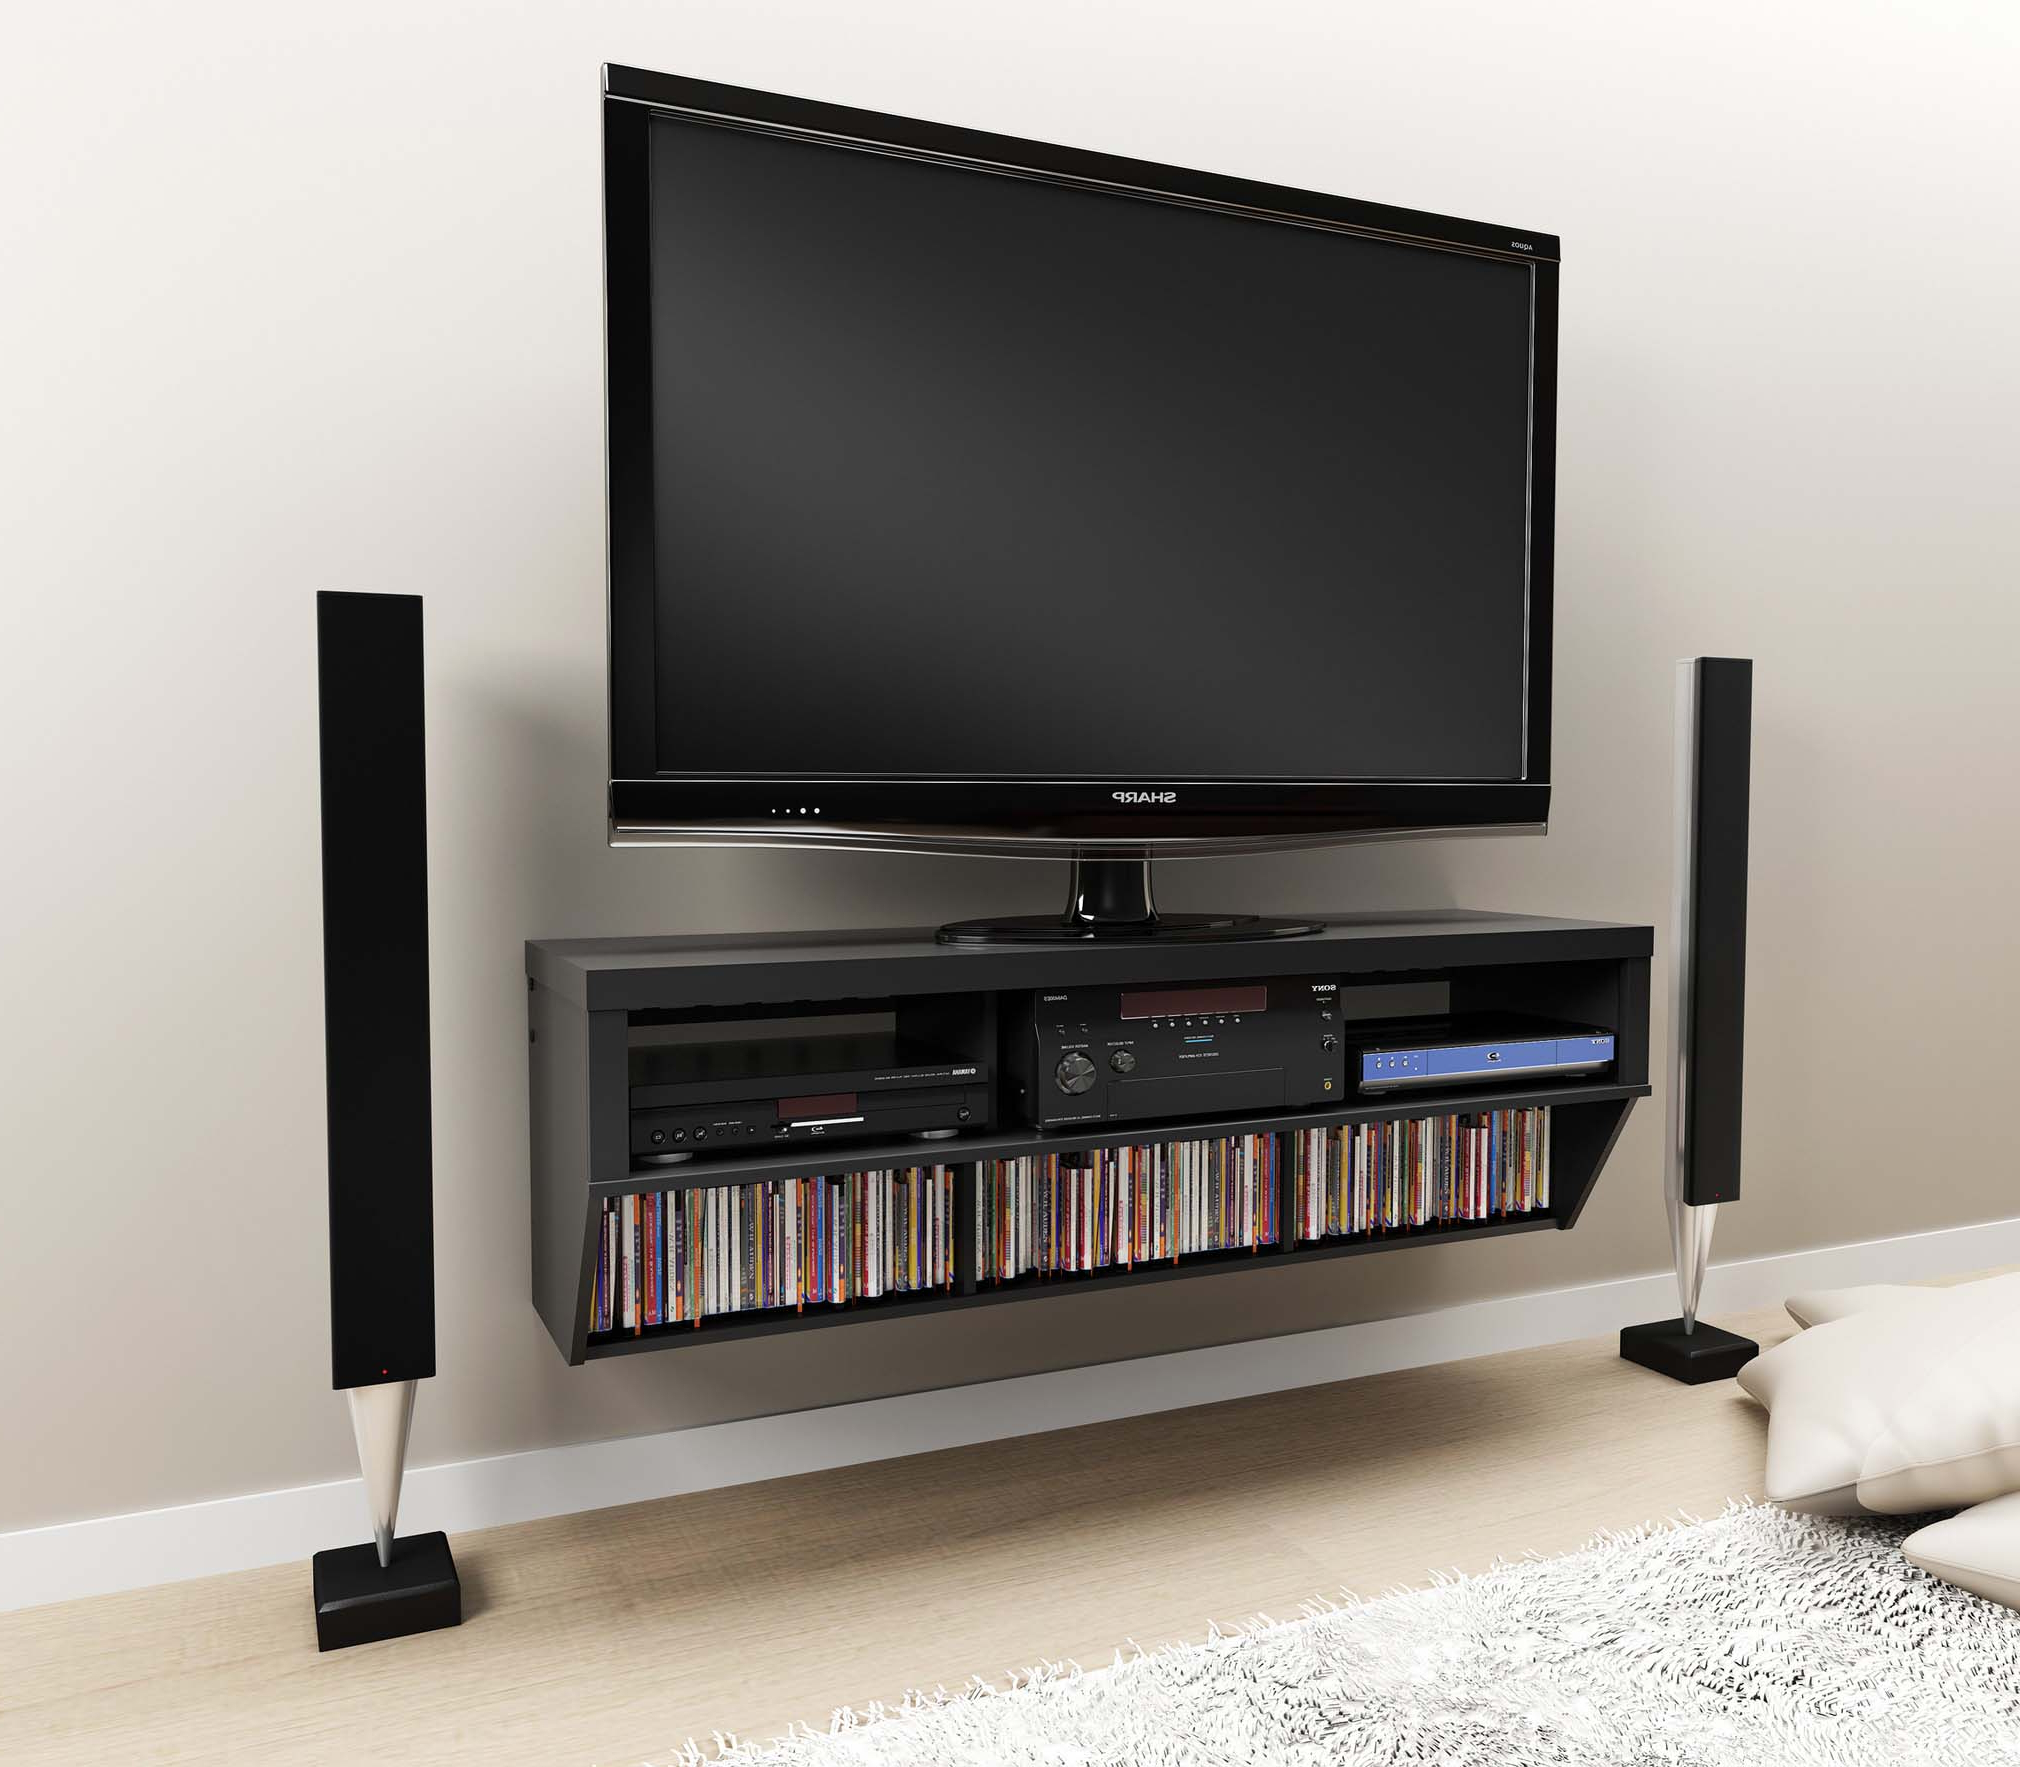 Plasma Tv Holders Throughout Most Up To Date Awesome Plasma Tv Portable Racks – Universal Tv Stand (Gallery 2 of 20)